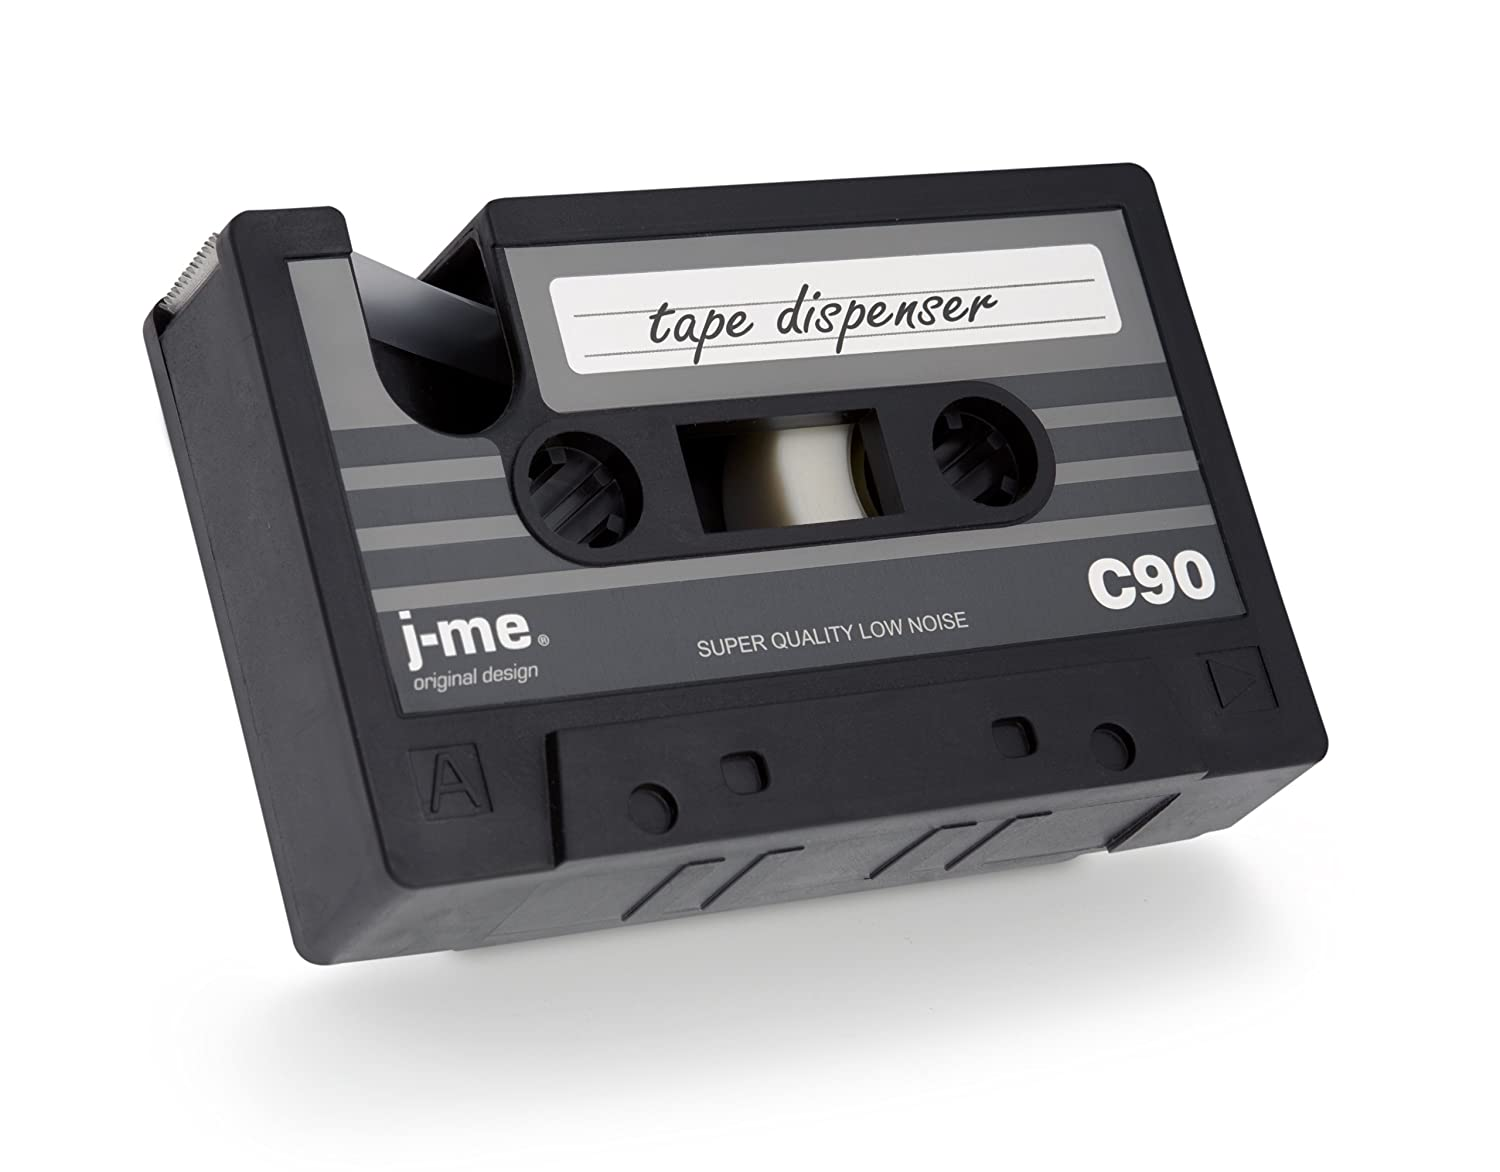 Cassette Tape Dispenser with one roll of sticky tape. Five designs available.